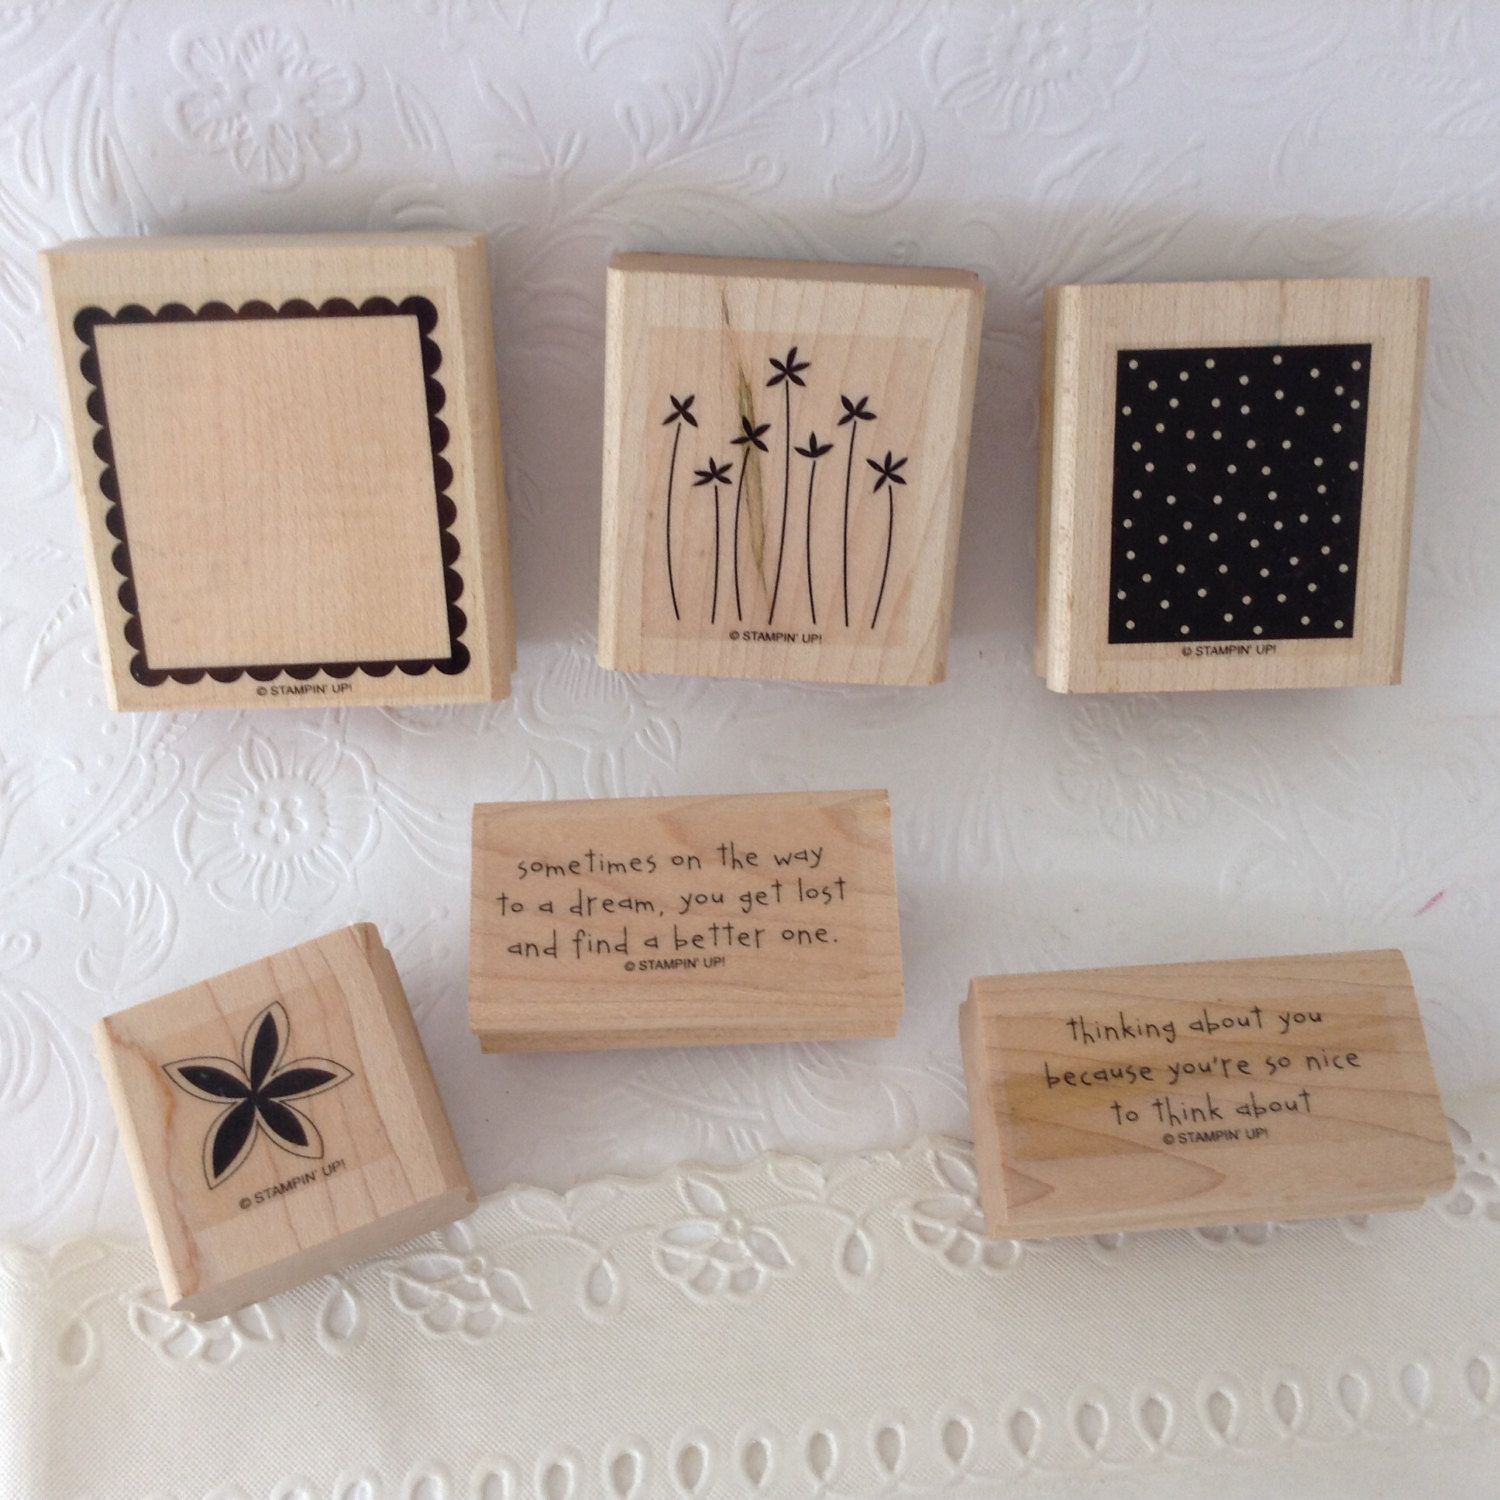 Stampin Up - Sweet Dreams - Retired - bargain wood mounted stamp set by TheWhatNaught on Etsy